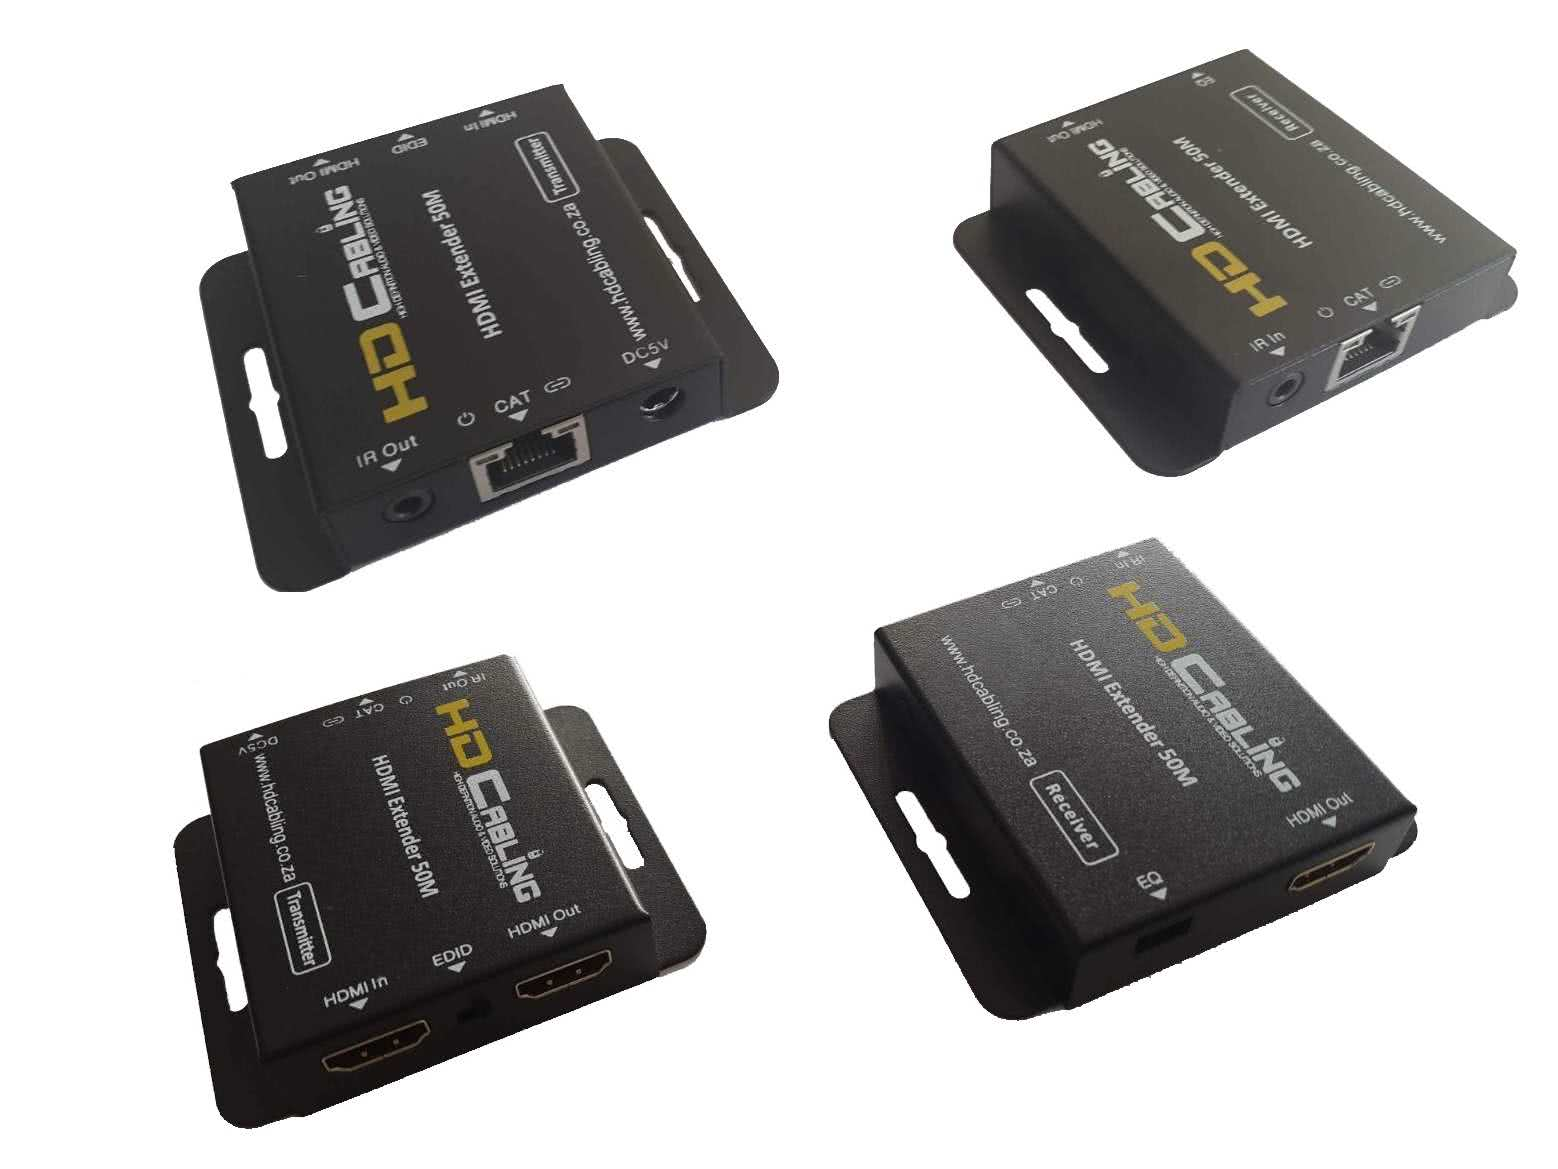 1x2 HDMI over CAT6/7 HDMI Splitter & Extender with HDMI Loop-out (Passthrough) and EDID + Equalizer Function